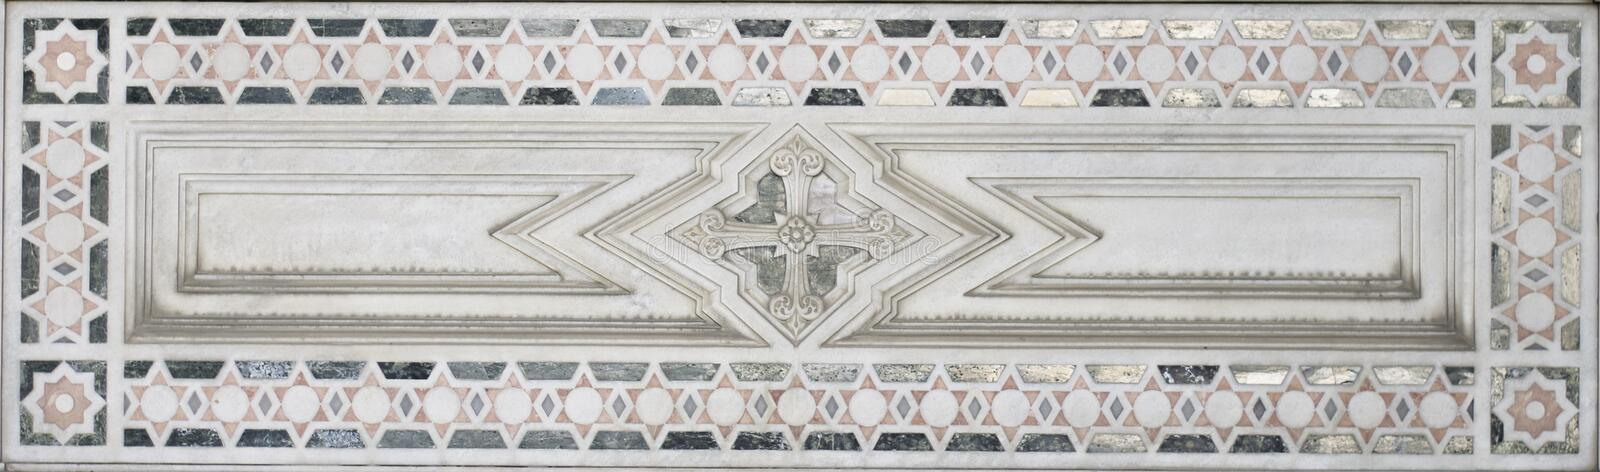 Marble Decoration (abstract star element pattern). Stone Marble Decoration of an historic monument. Taken in Genova, Italy. If needed I can provide tiff file royalty free stock images